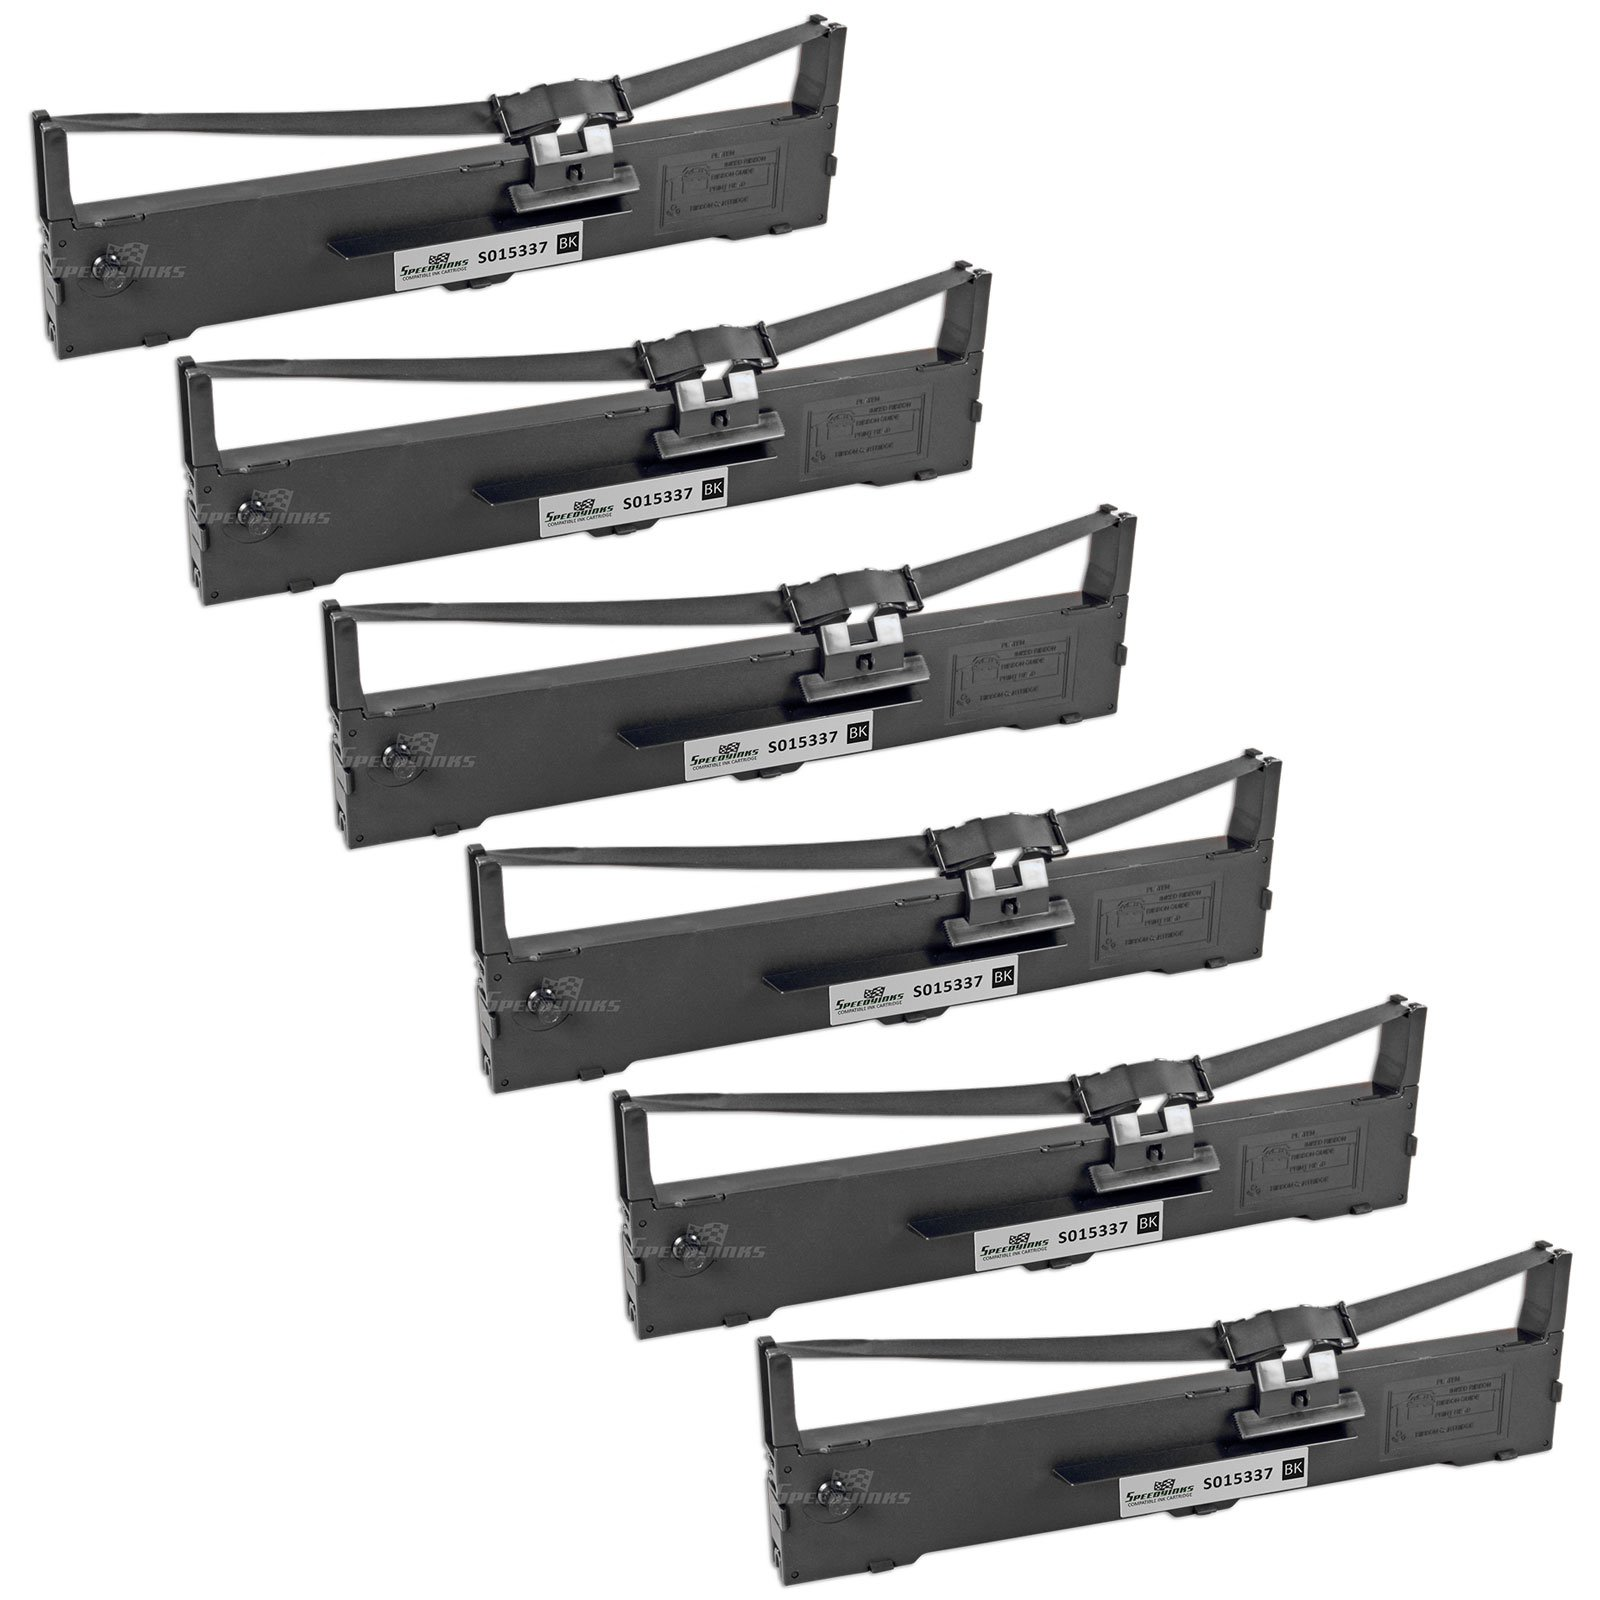 Speedy Inks - Compatible 6 Pack Black Ribbon Cartridges for Epson S015337 for use in Epson LQ-590 Impact Printer